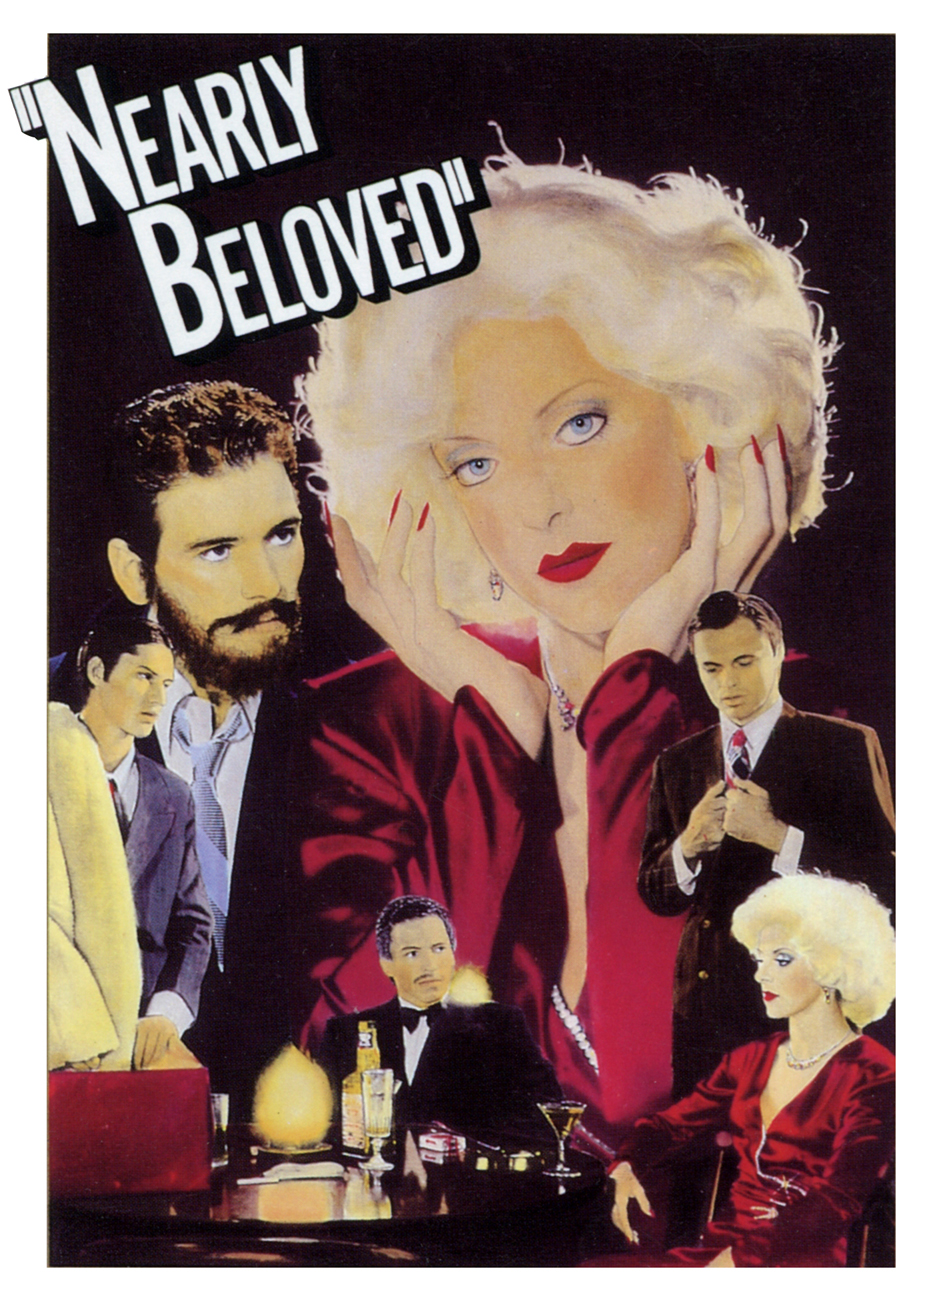 'Nearly Beloved' poster